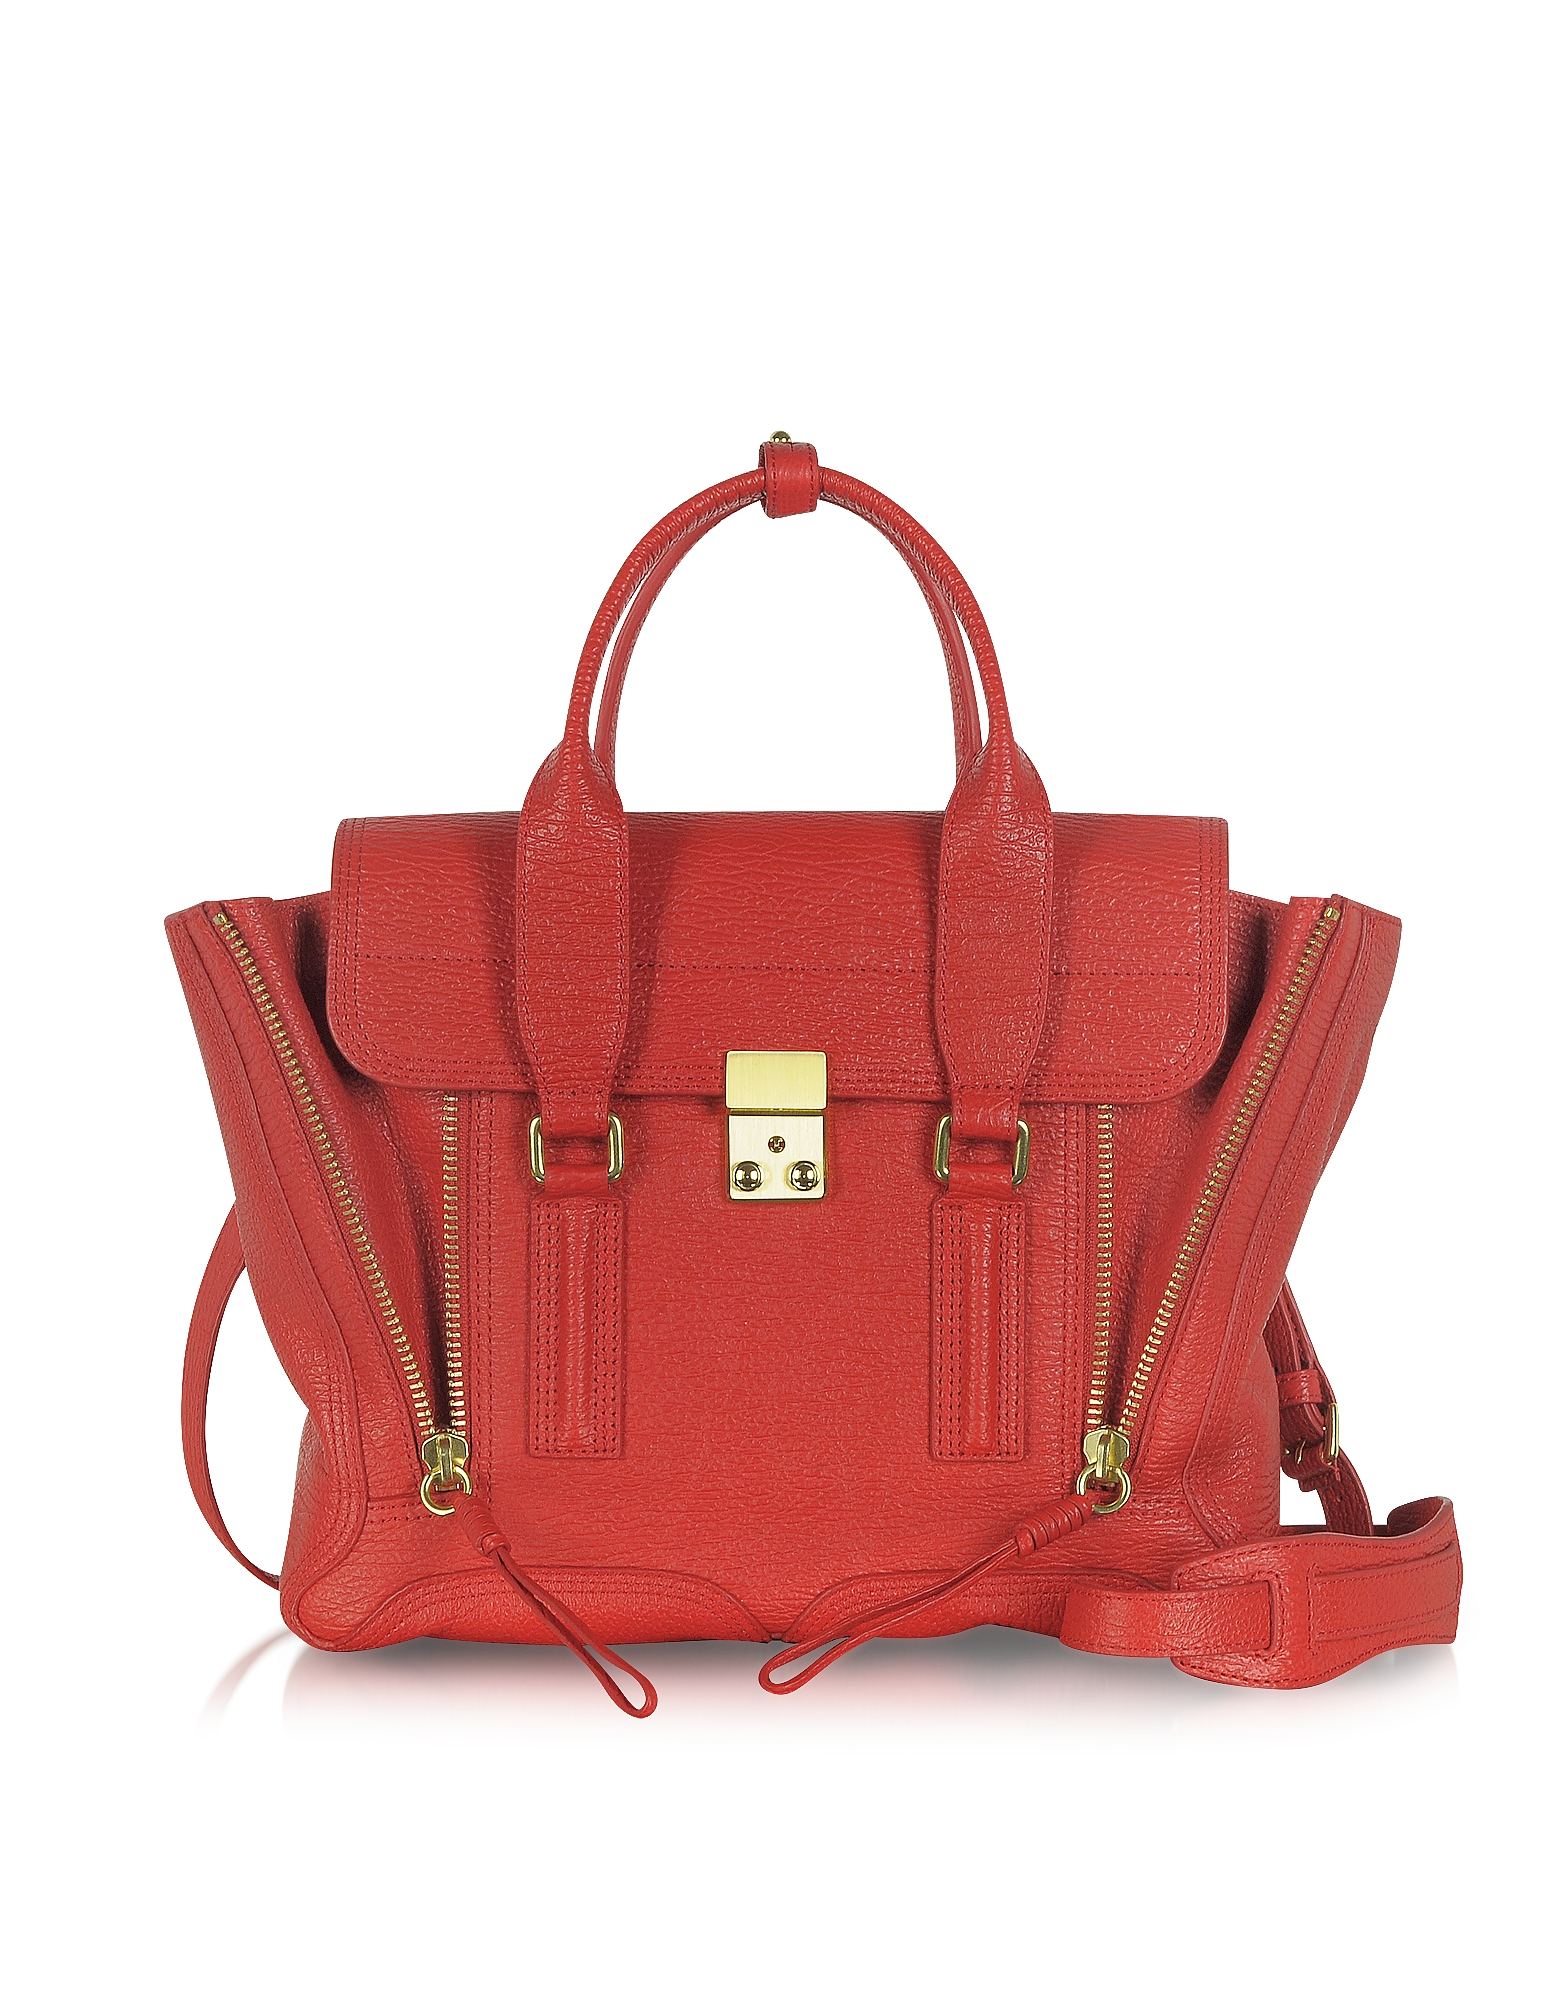 3.1 Phillip Lim Handbags, Red Leather Pashli Medium Satchel